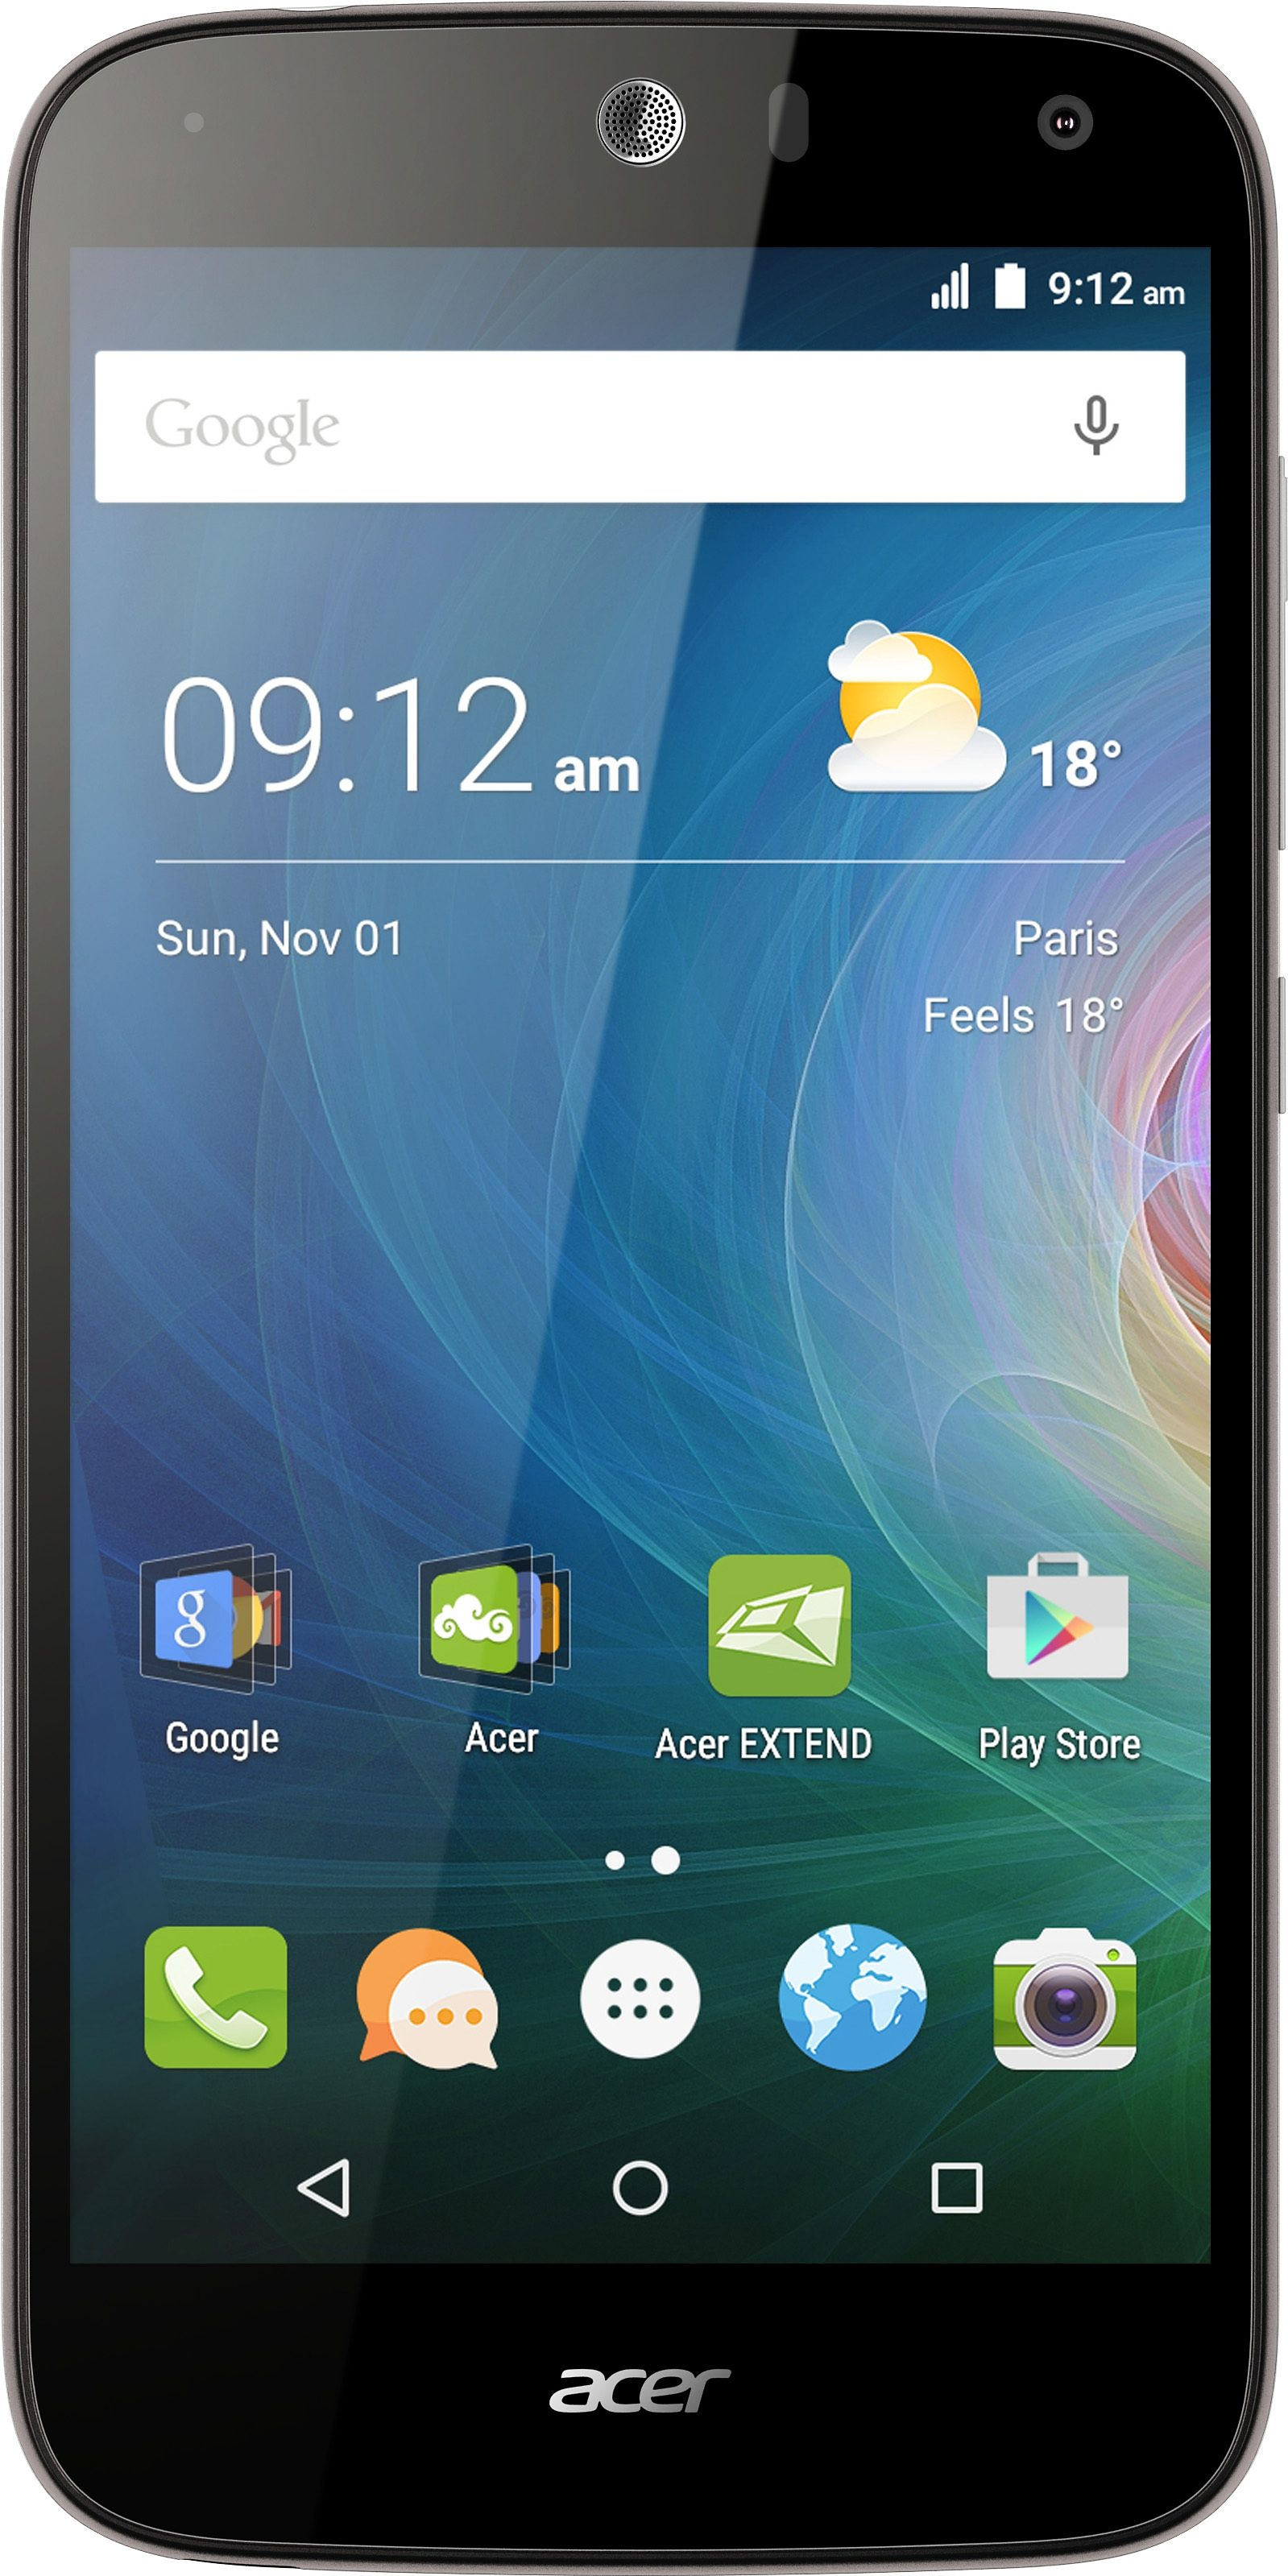 Acer Liquid Z630 Smartphone, 14 cm (5,5 Zoll) Display, LTE (4G), Android 5.1 Lollipop, 8,0 Megapixel